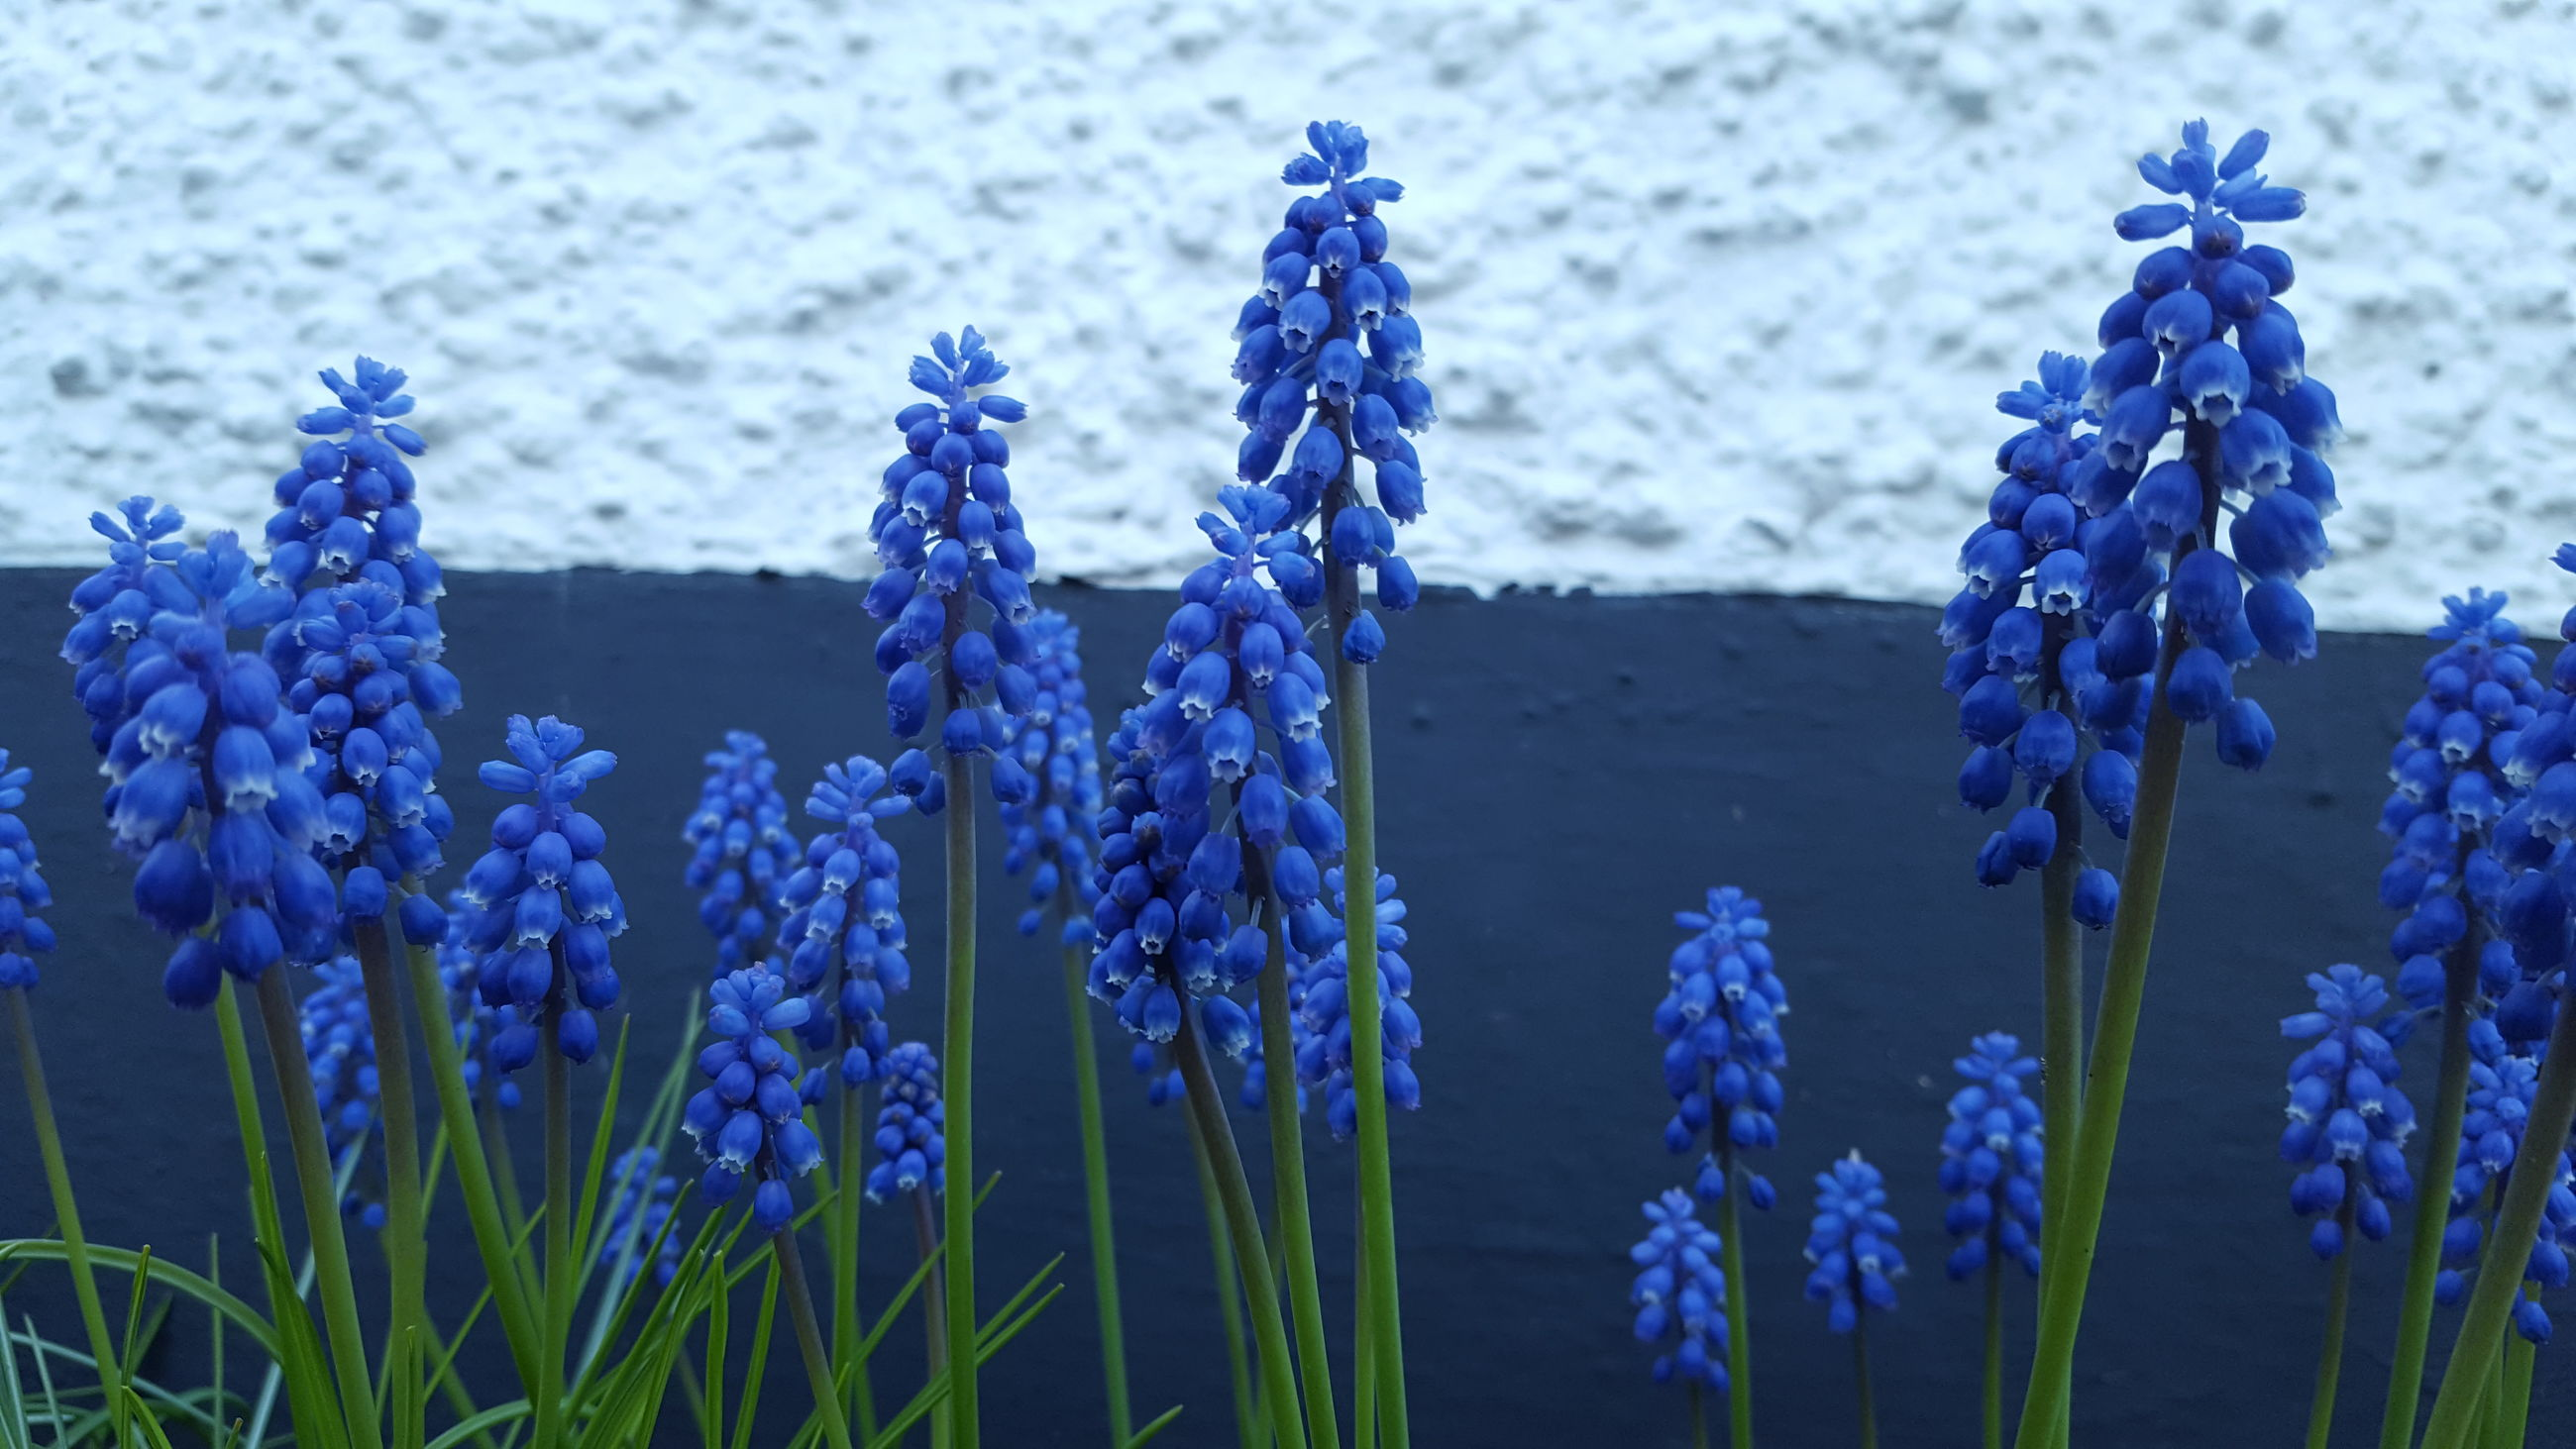 flower, purple, nature, growth, blue, plant, beauty in nature, fragility, no people, hyacinth, lavender, close-up, outdoors, freshness, flower head, day